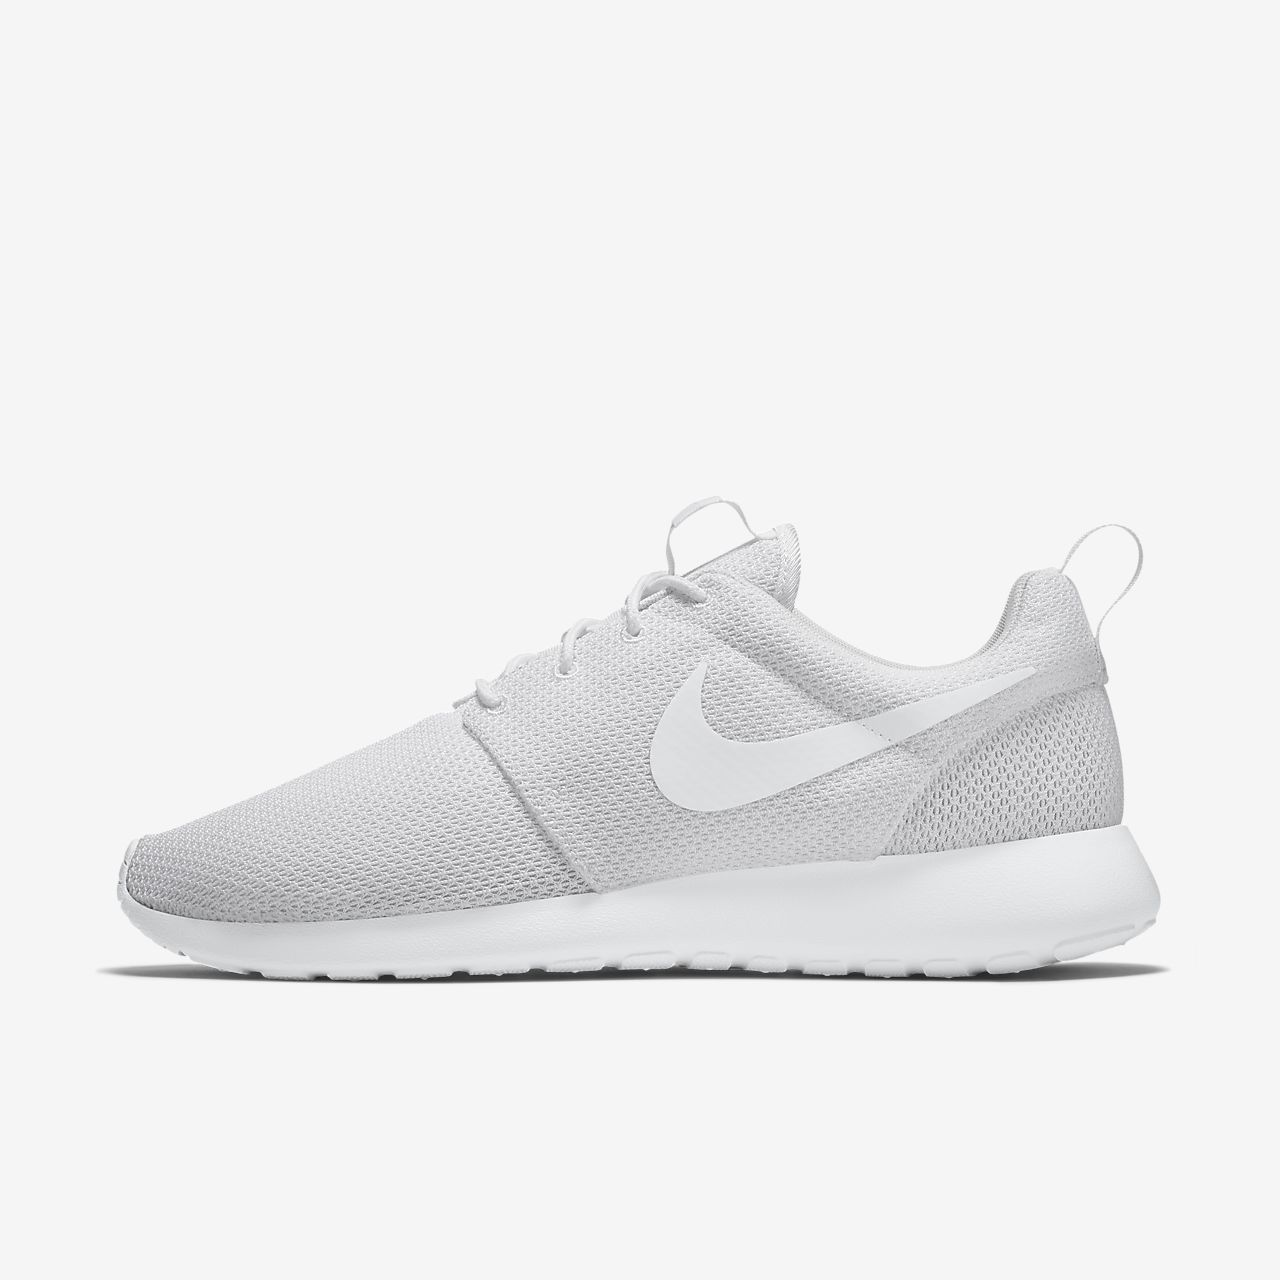 4618620e66e9f Nike Roshe One Men s Shoe. Nike.com